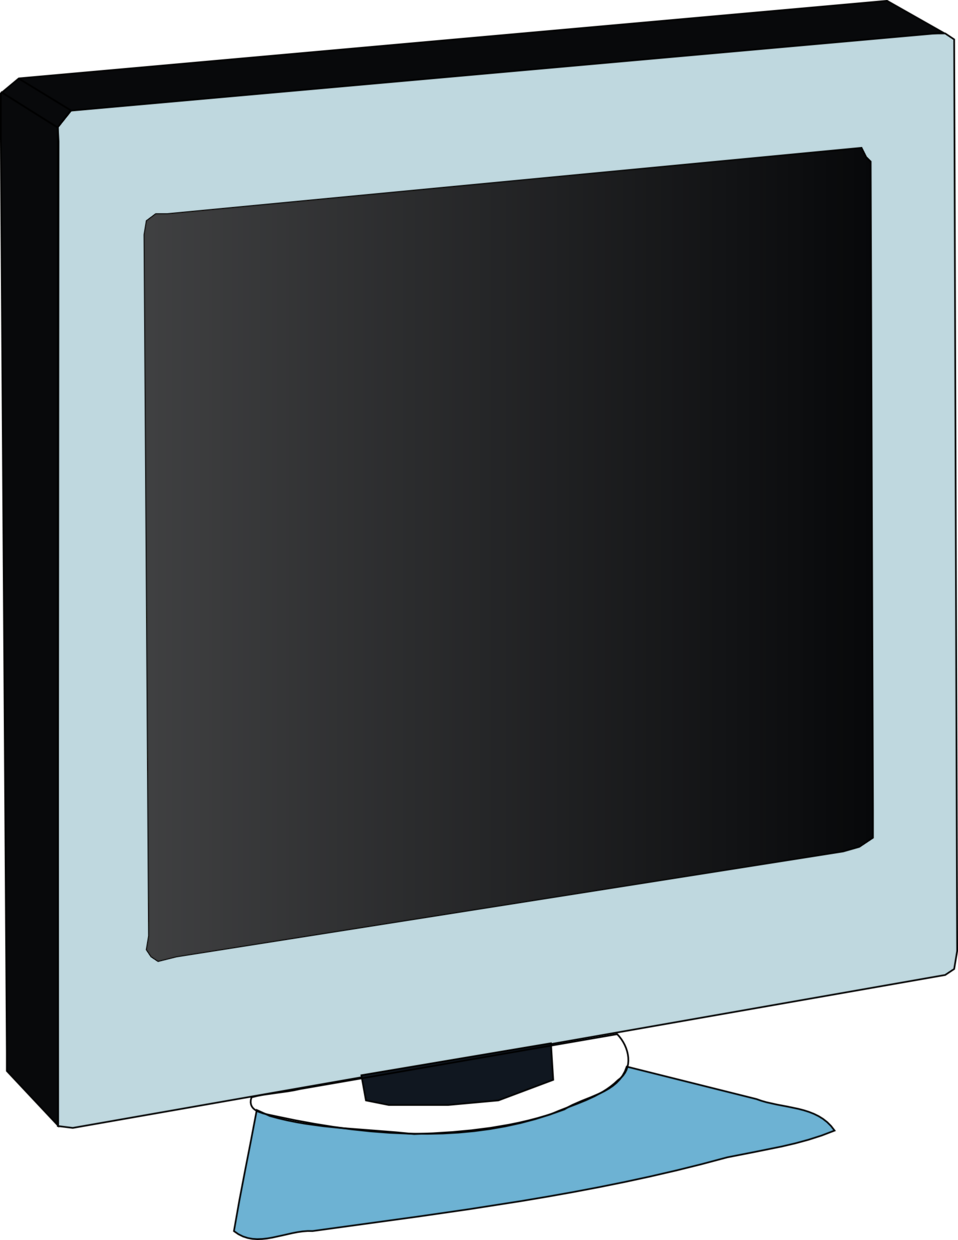 Public domain clip art. Office clipart monitor